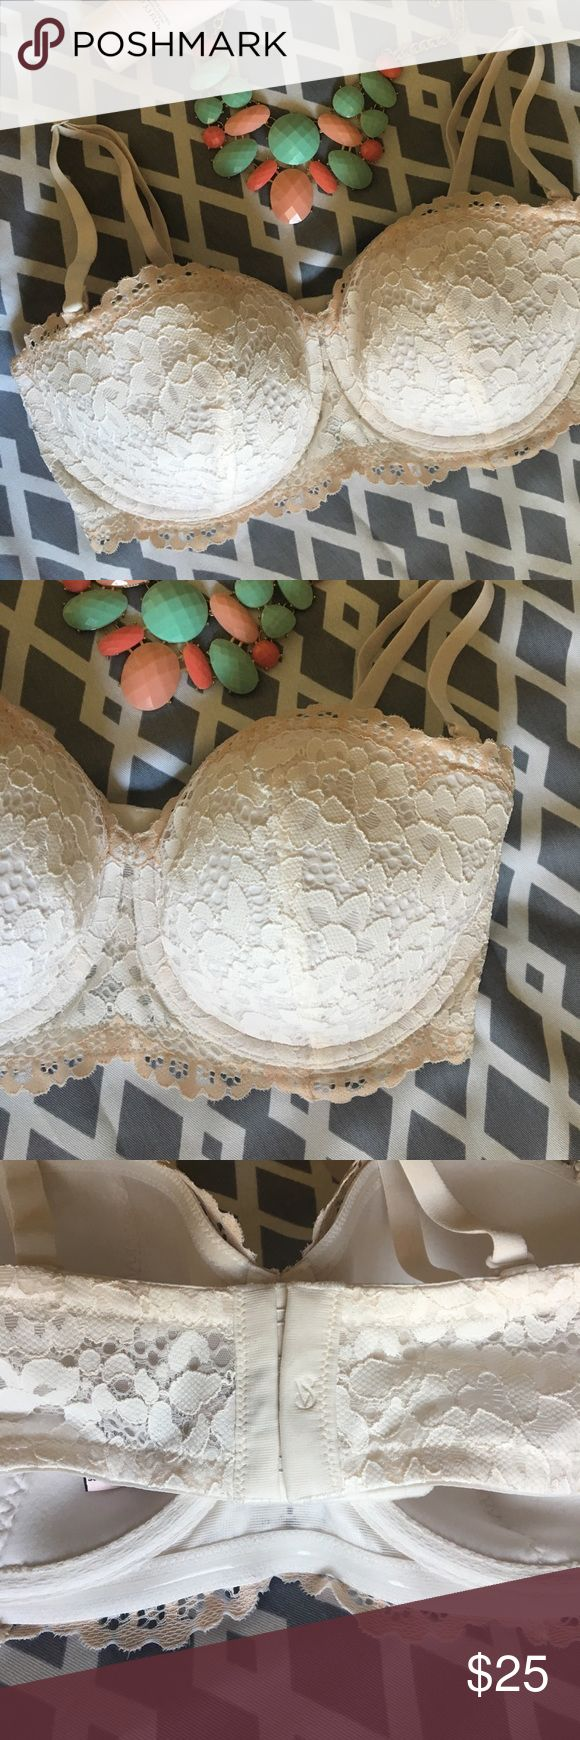 Victoria Secret Bra - Body By Victoria Victoria Secret strapless bra - convertible. Only worn once to try on, never used thru out day. Like new, no tags. Pretty eggshell color lace bra with beige trim. Body By Victoria Lined Balconet 36DD. Victoria's Secret Intimates & Sleepwear Bras